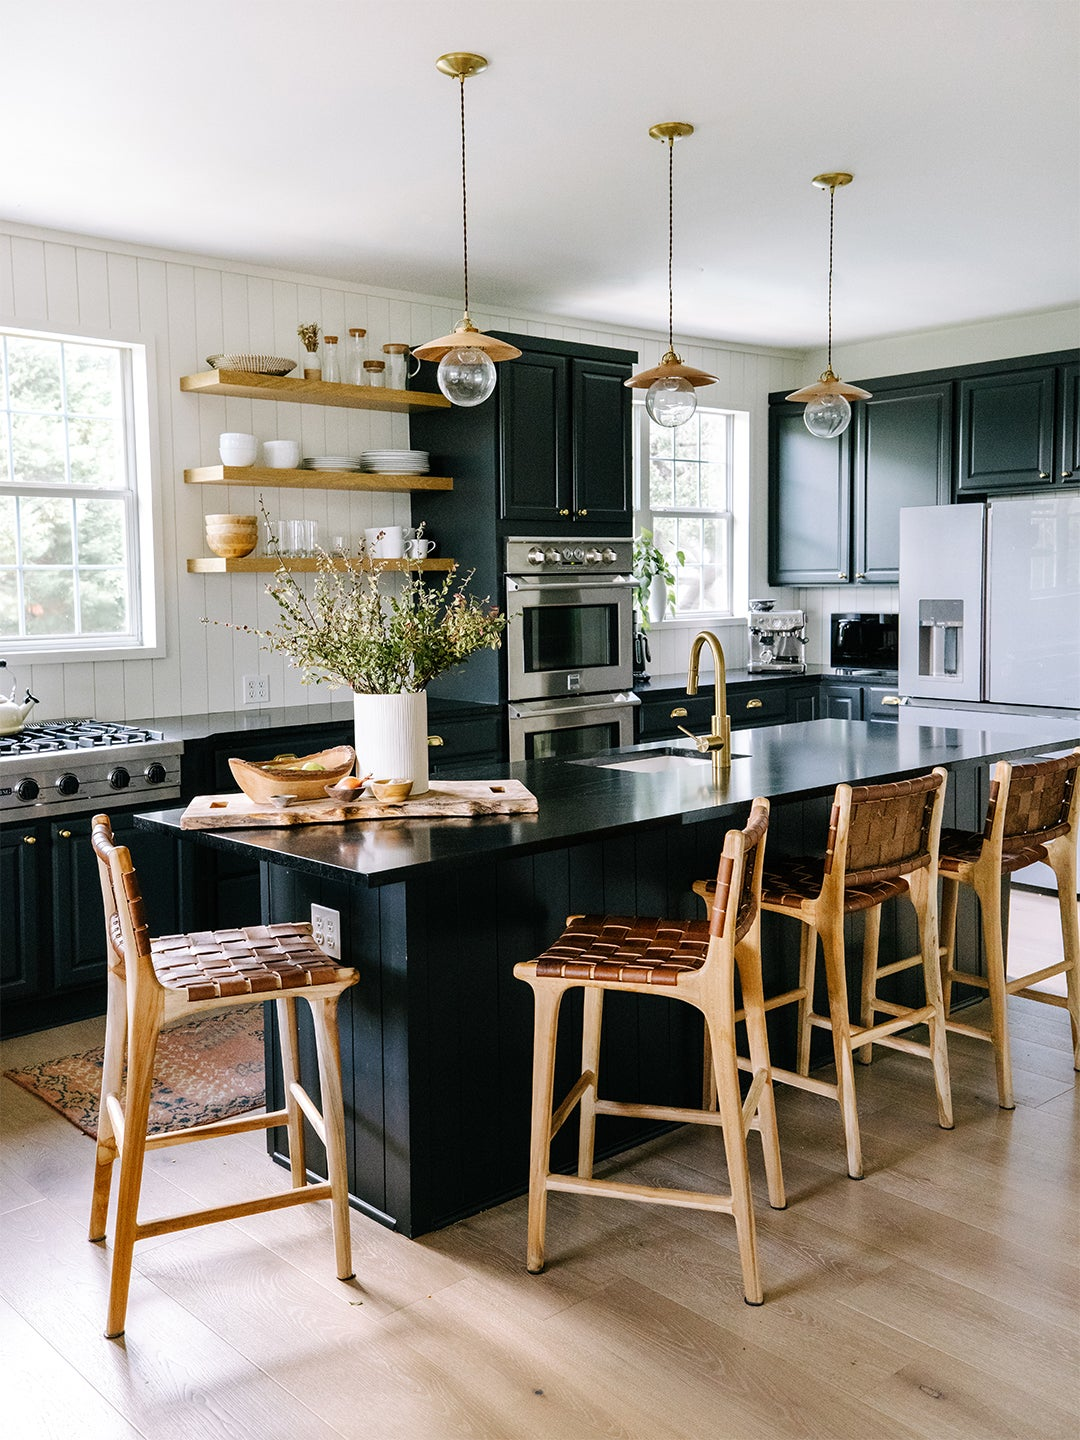 Black cabinets and countertop kitchen